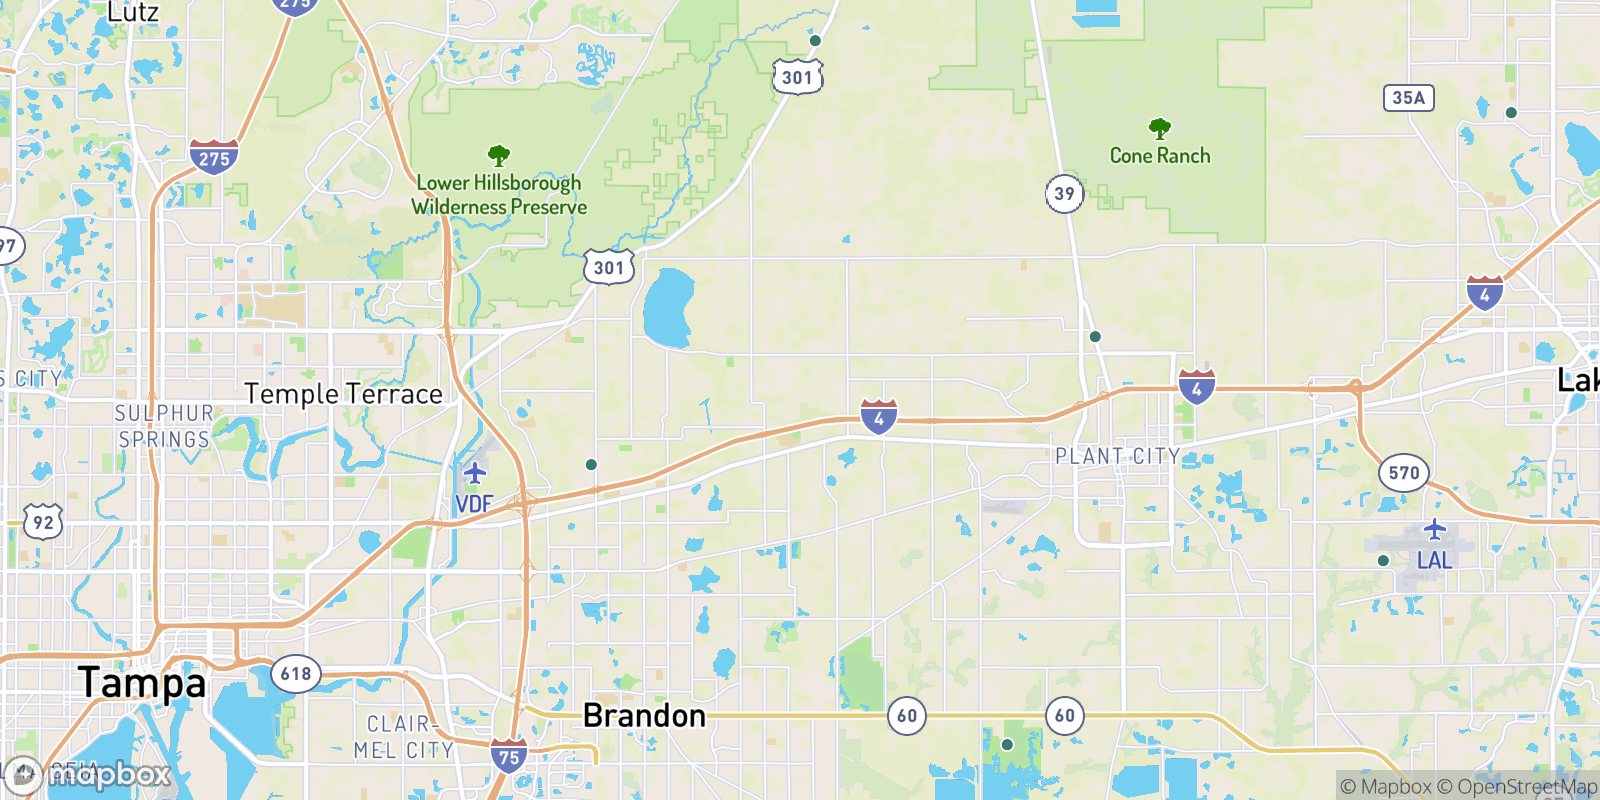 The best camping near Kenny, Florida